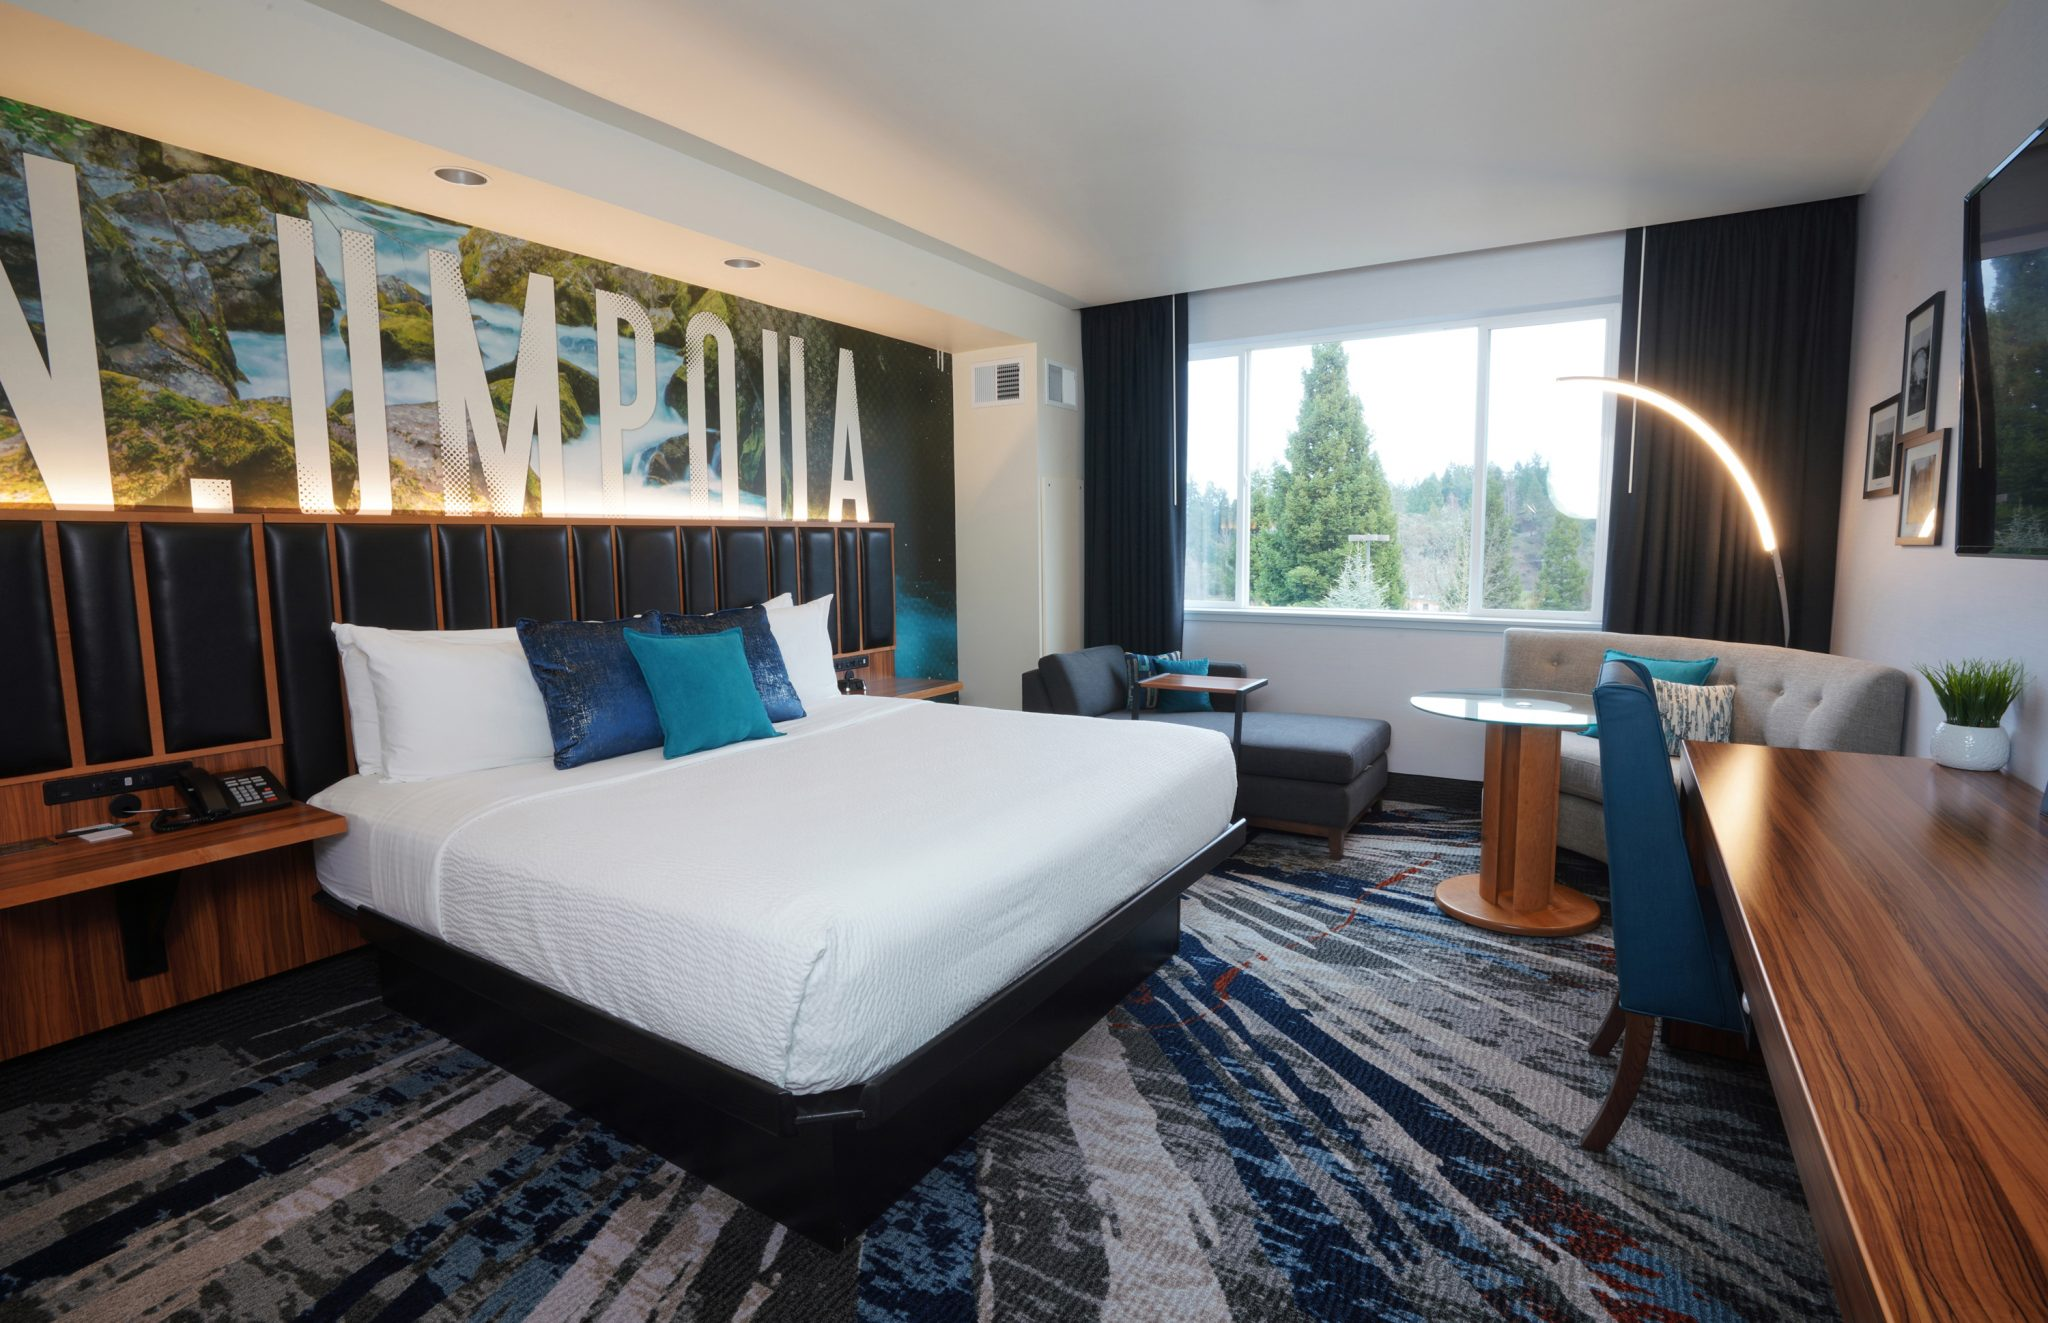 Accommodations At Seven Feathers Casino Resort In Canyonville Oregon Include The Newly Remodeled East Wing